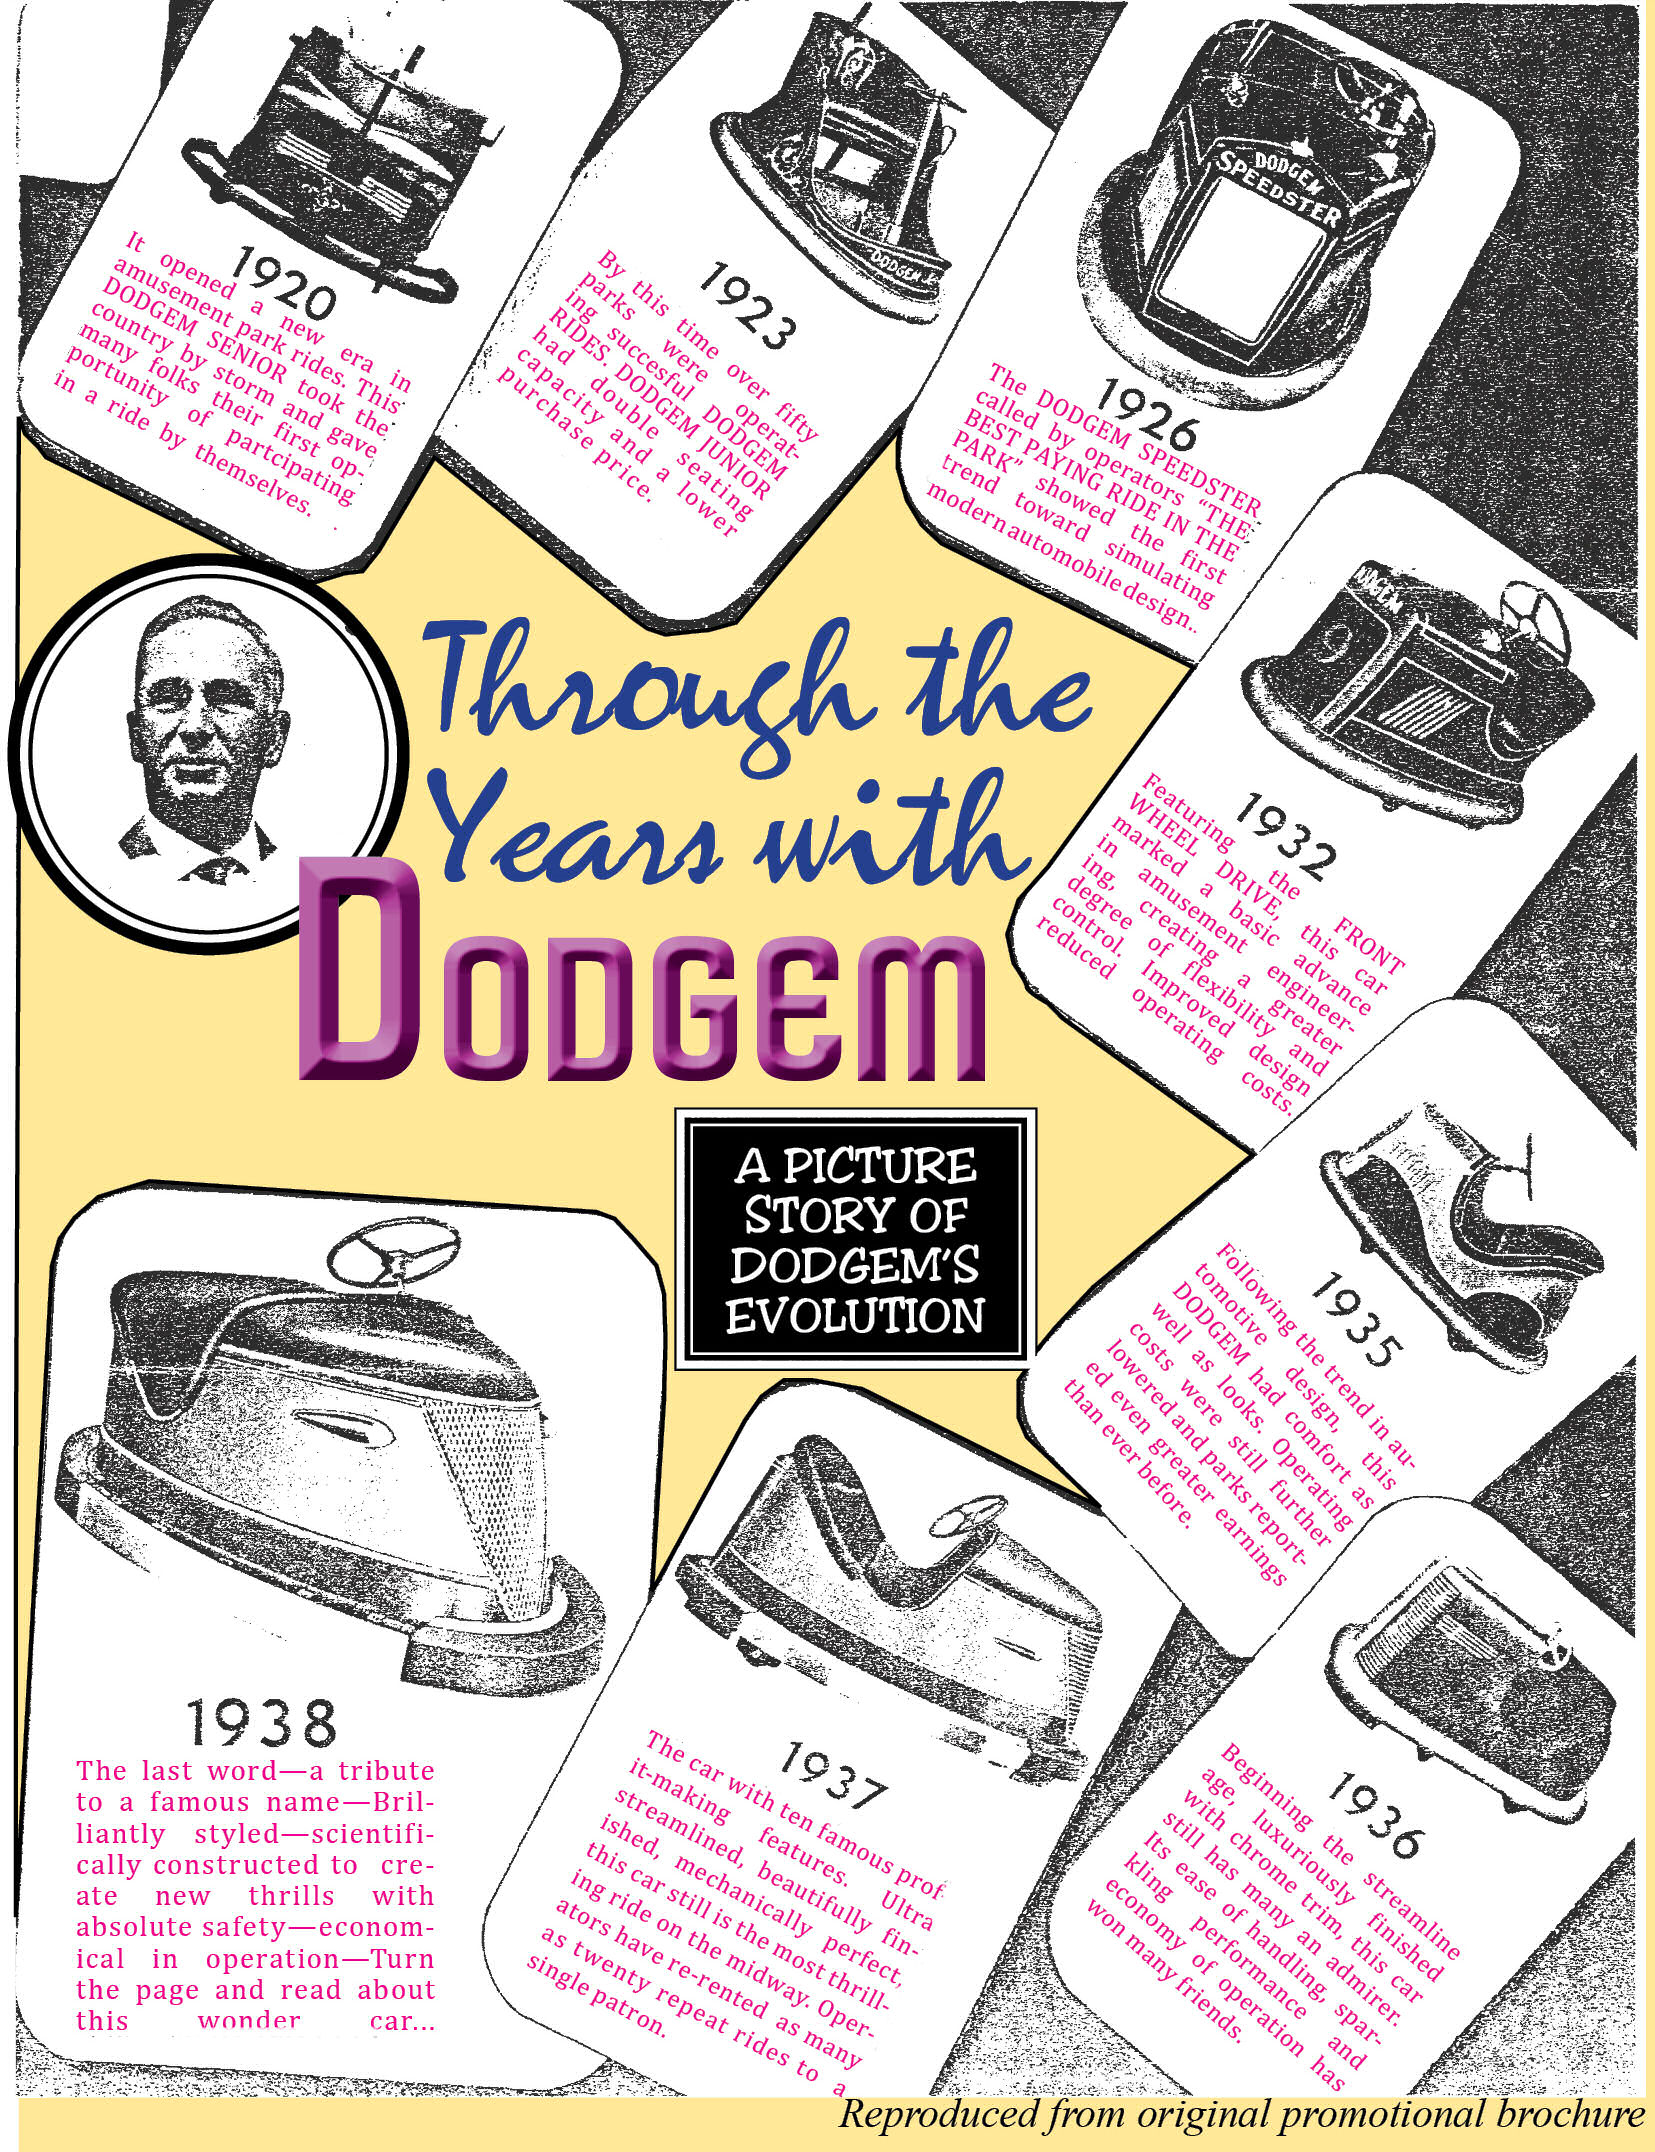 Through the years with Dodgem